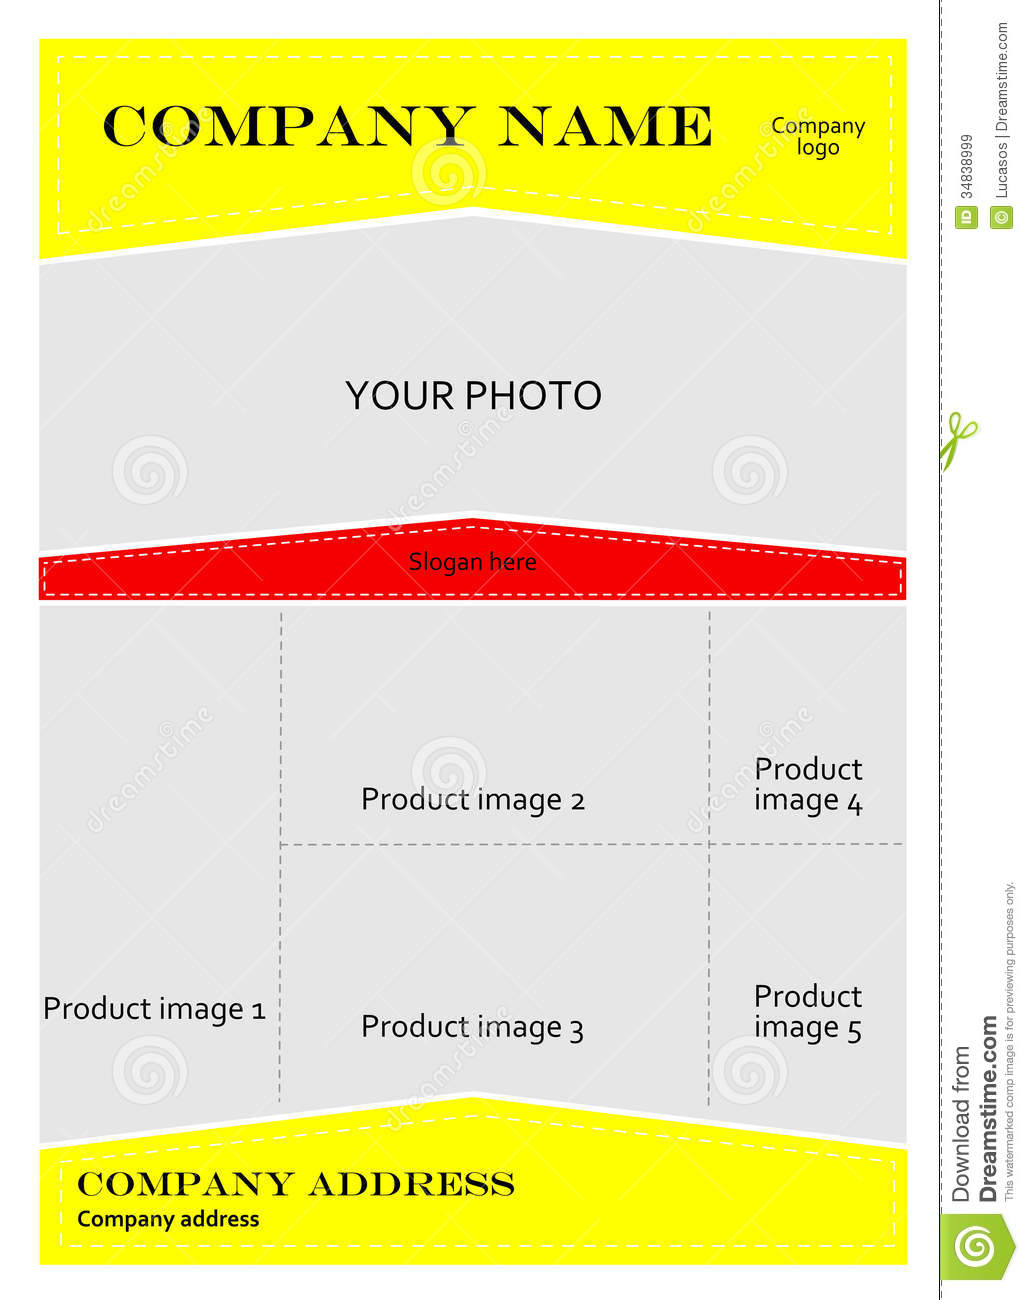 advertising brochure templates - template for advertising brochure royalty free stock